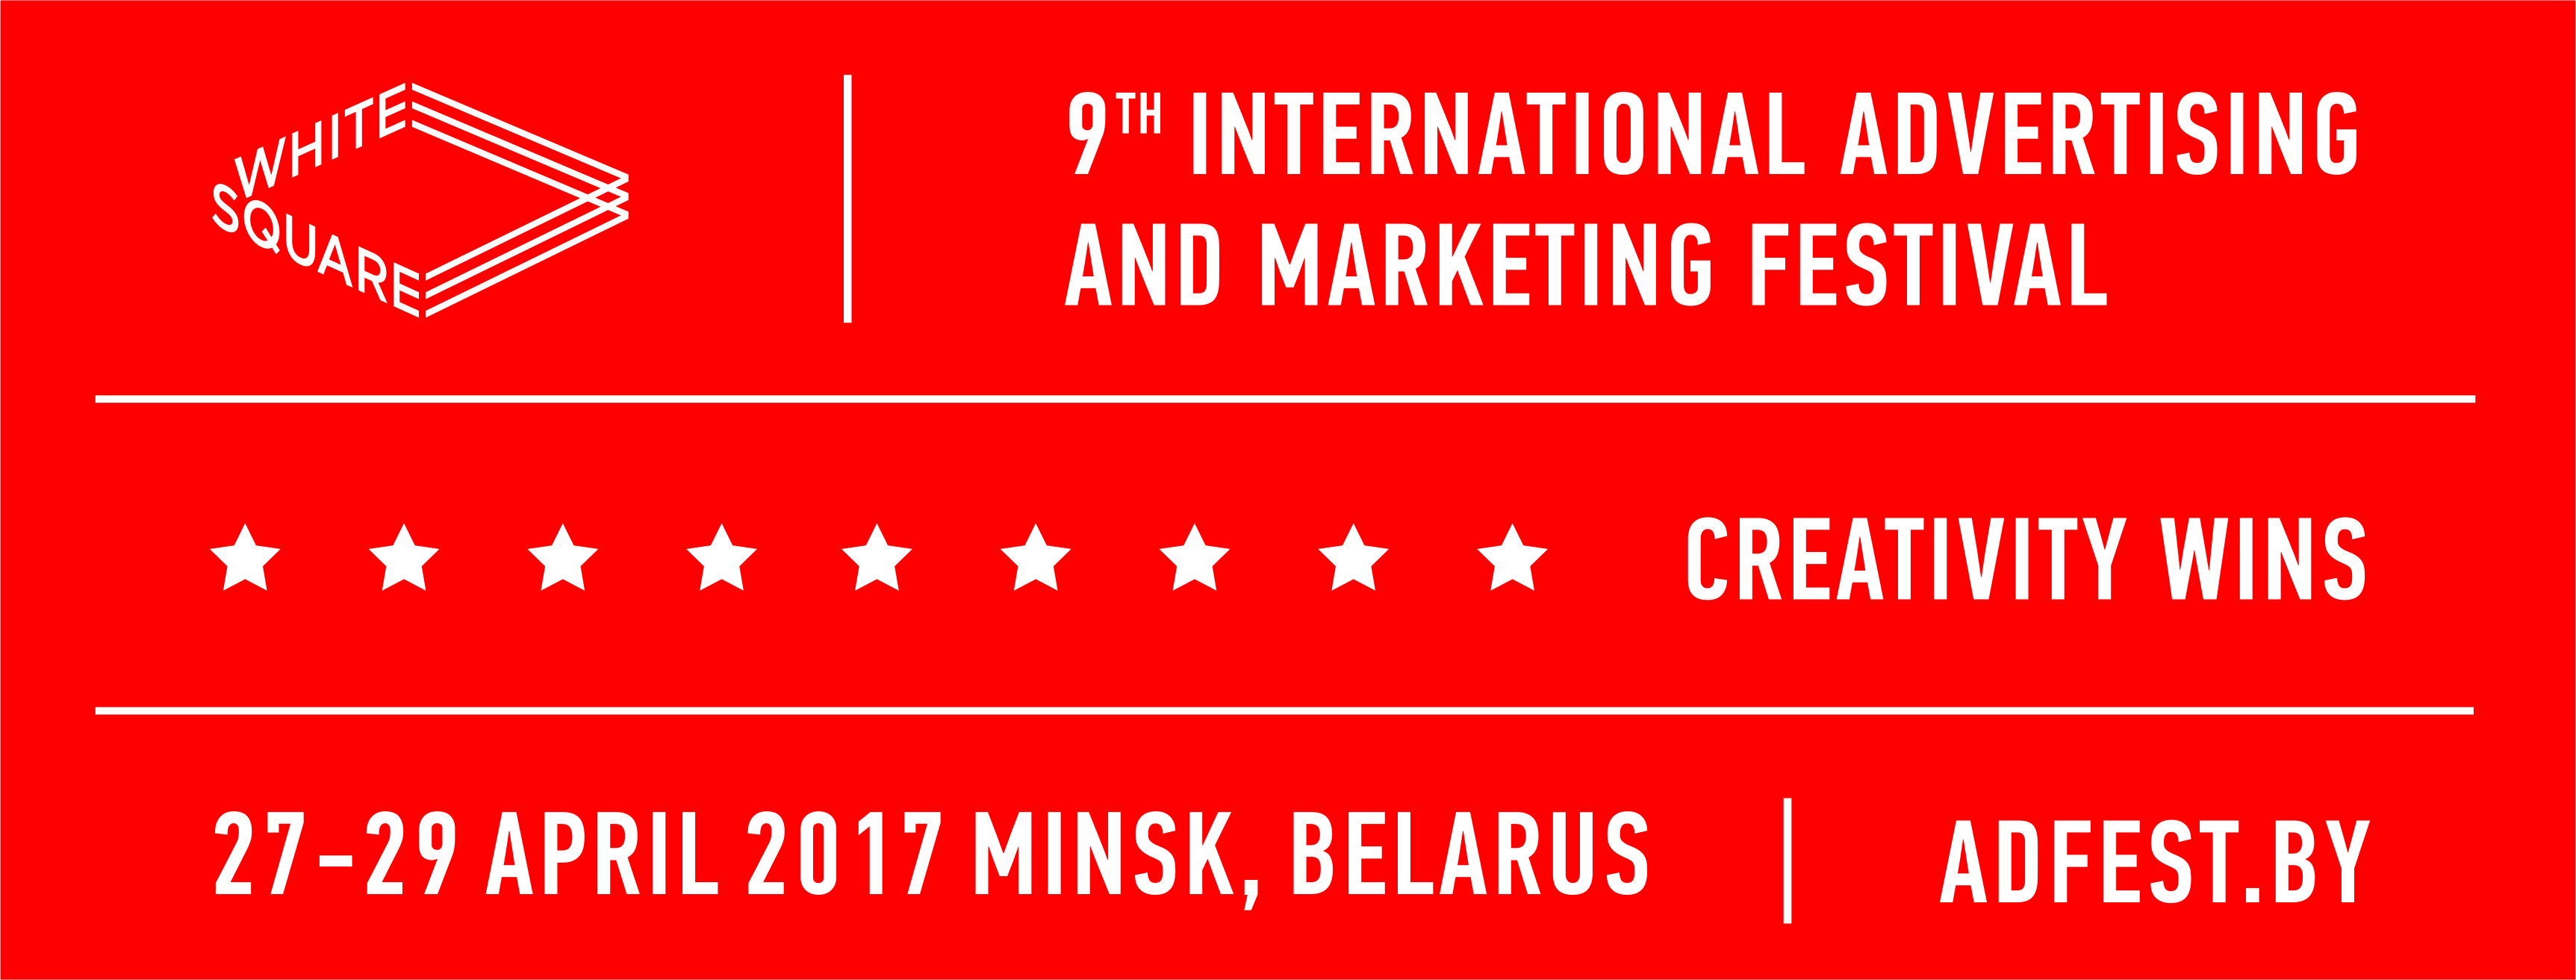 Call for Entries is Open. 9th International Advertising Festival «White Square»